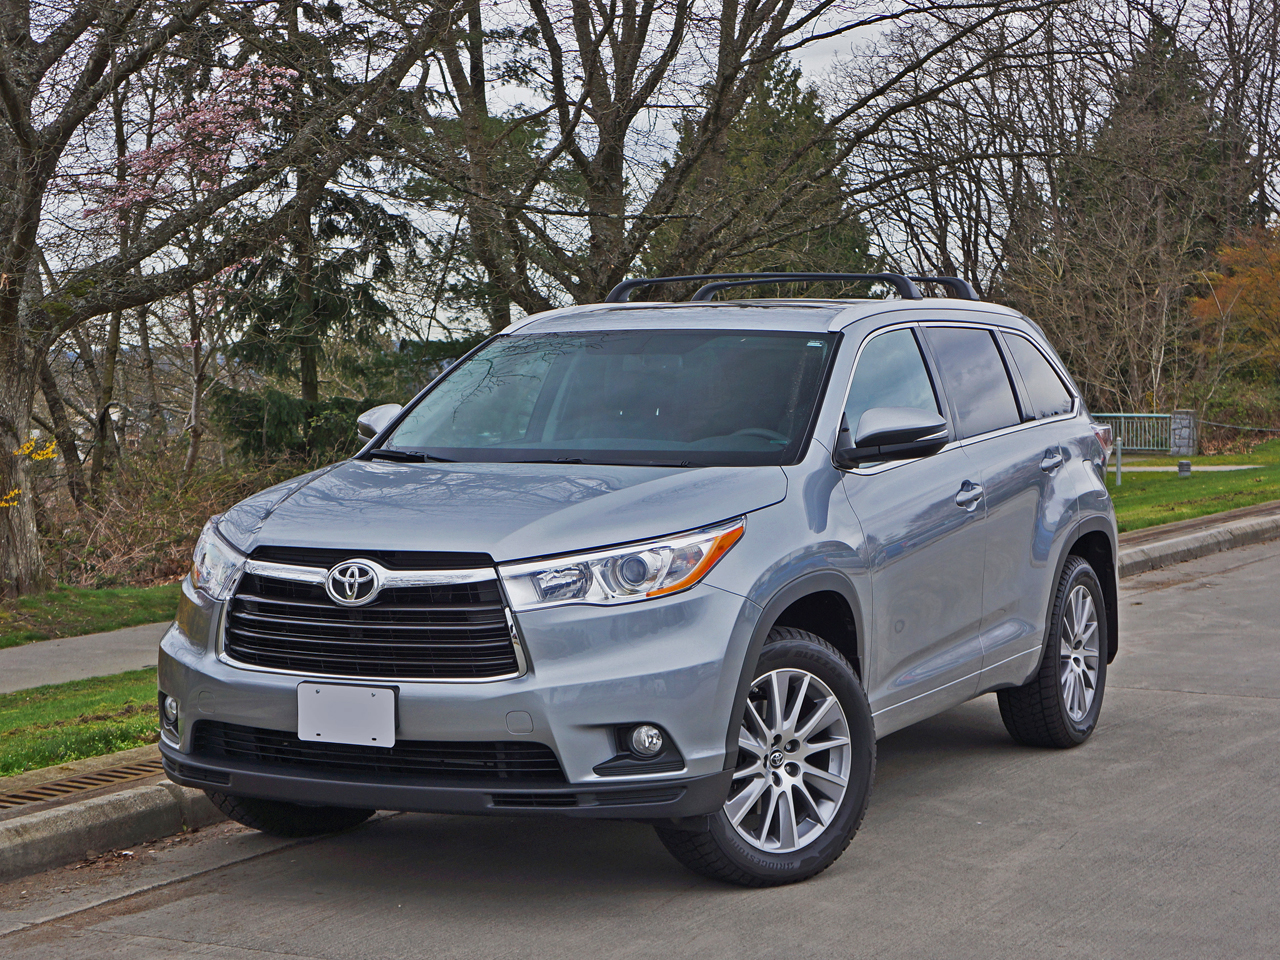 2016 Toyota Highlander Xle Awd Road Test Review